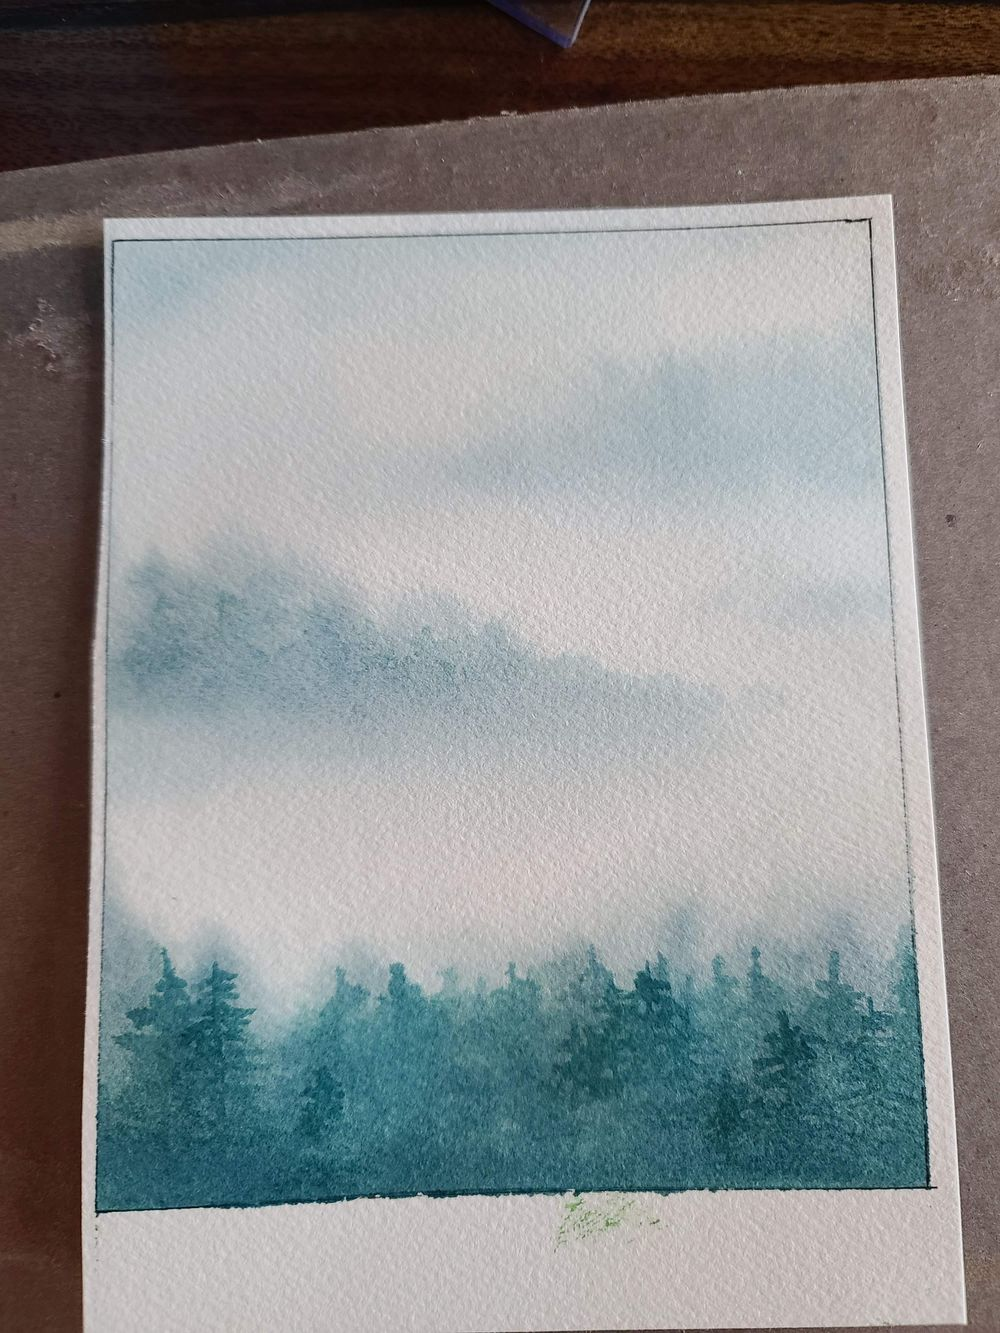 Misty Mountain Trees - image 1 - student project